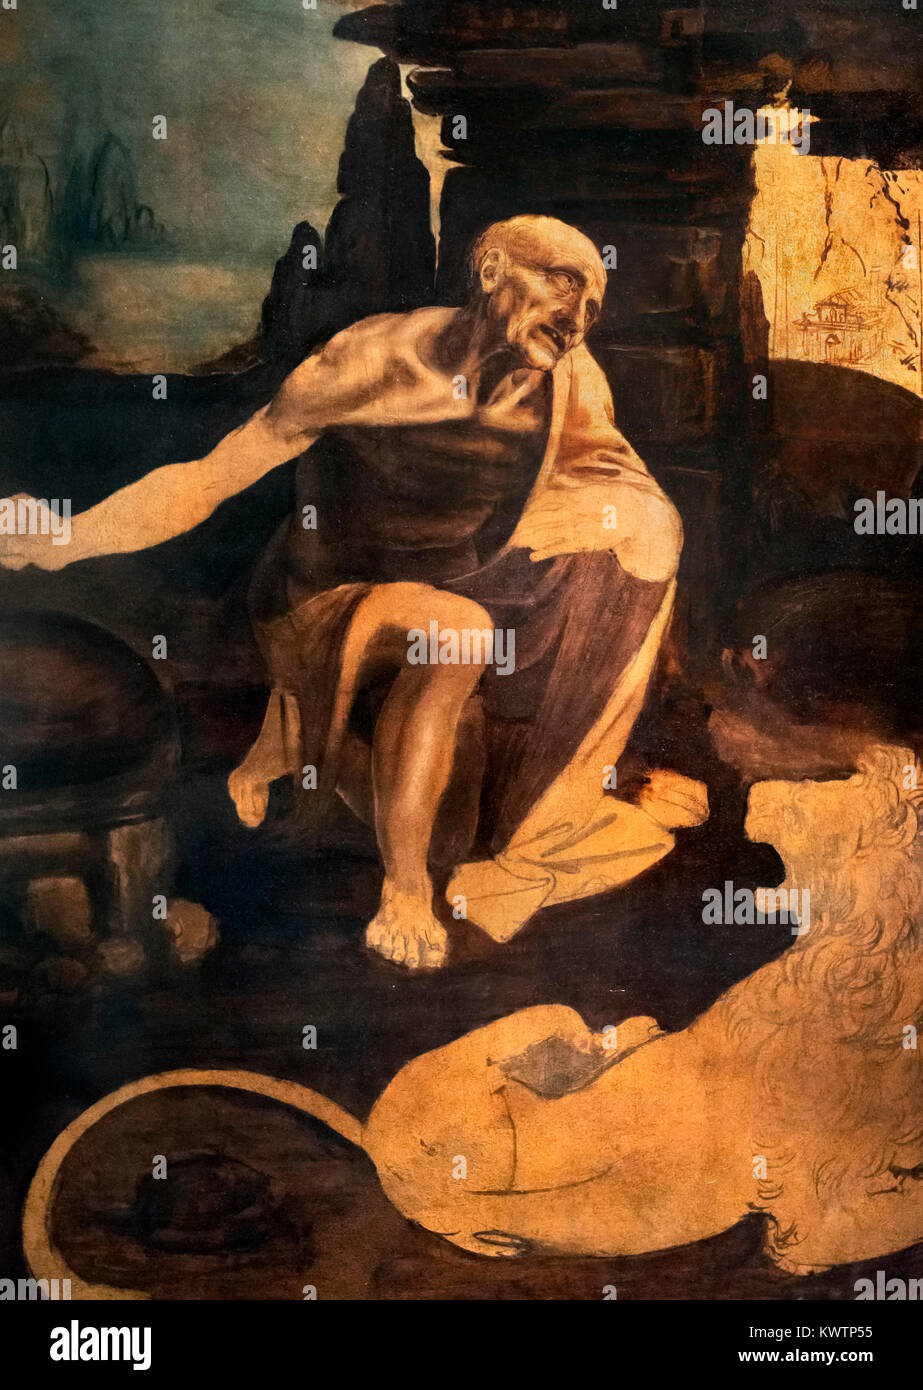 St Jerome in the Wilderness by Leonardo da Vinci (1452-1519), oil on panel, c.1482 - Stock Image